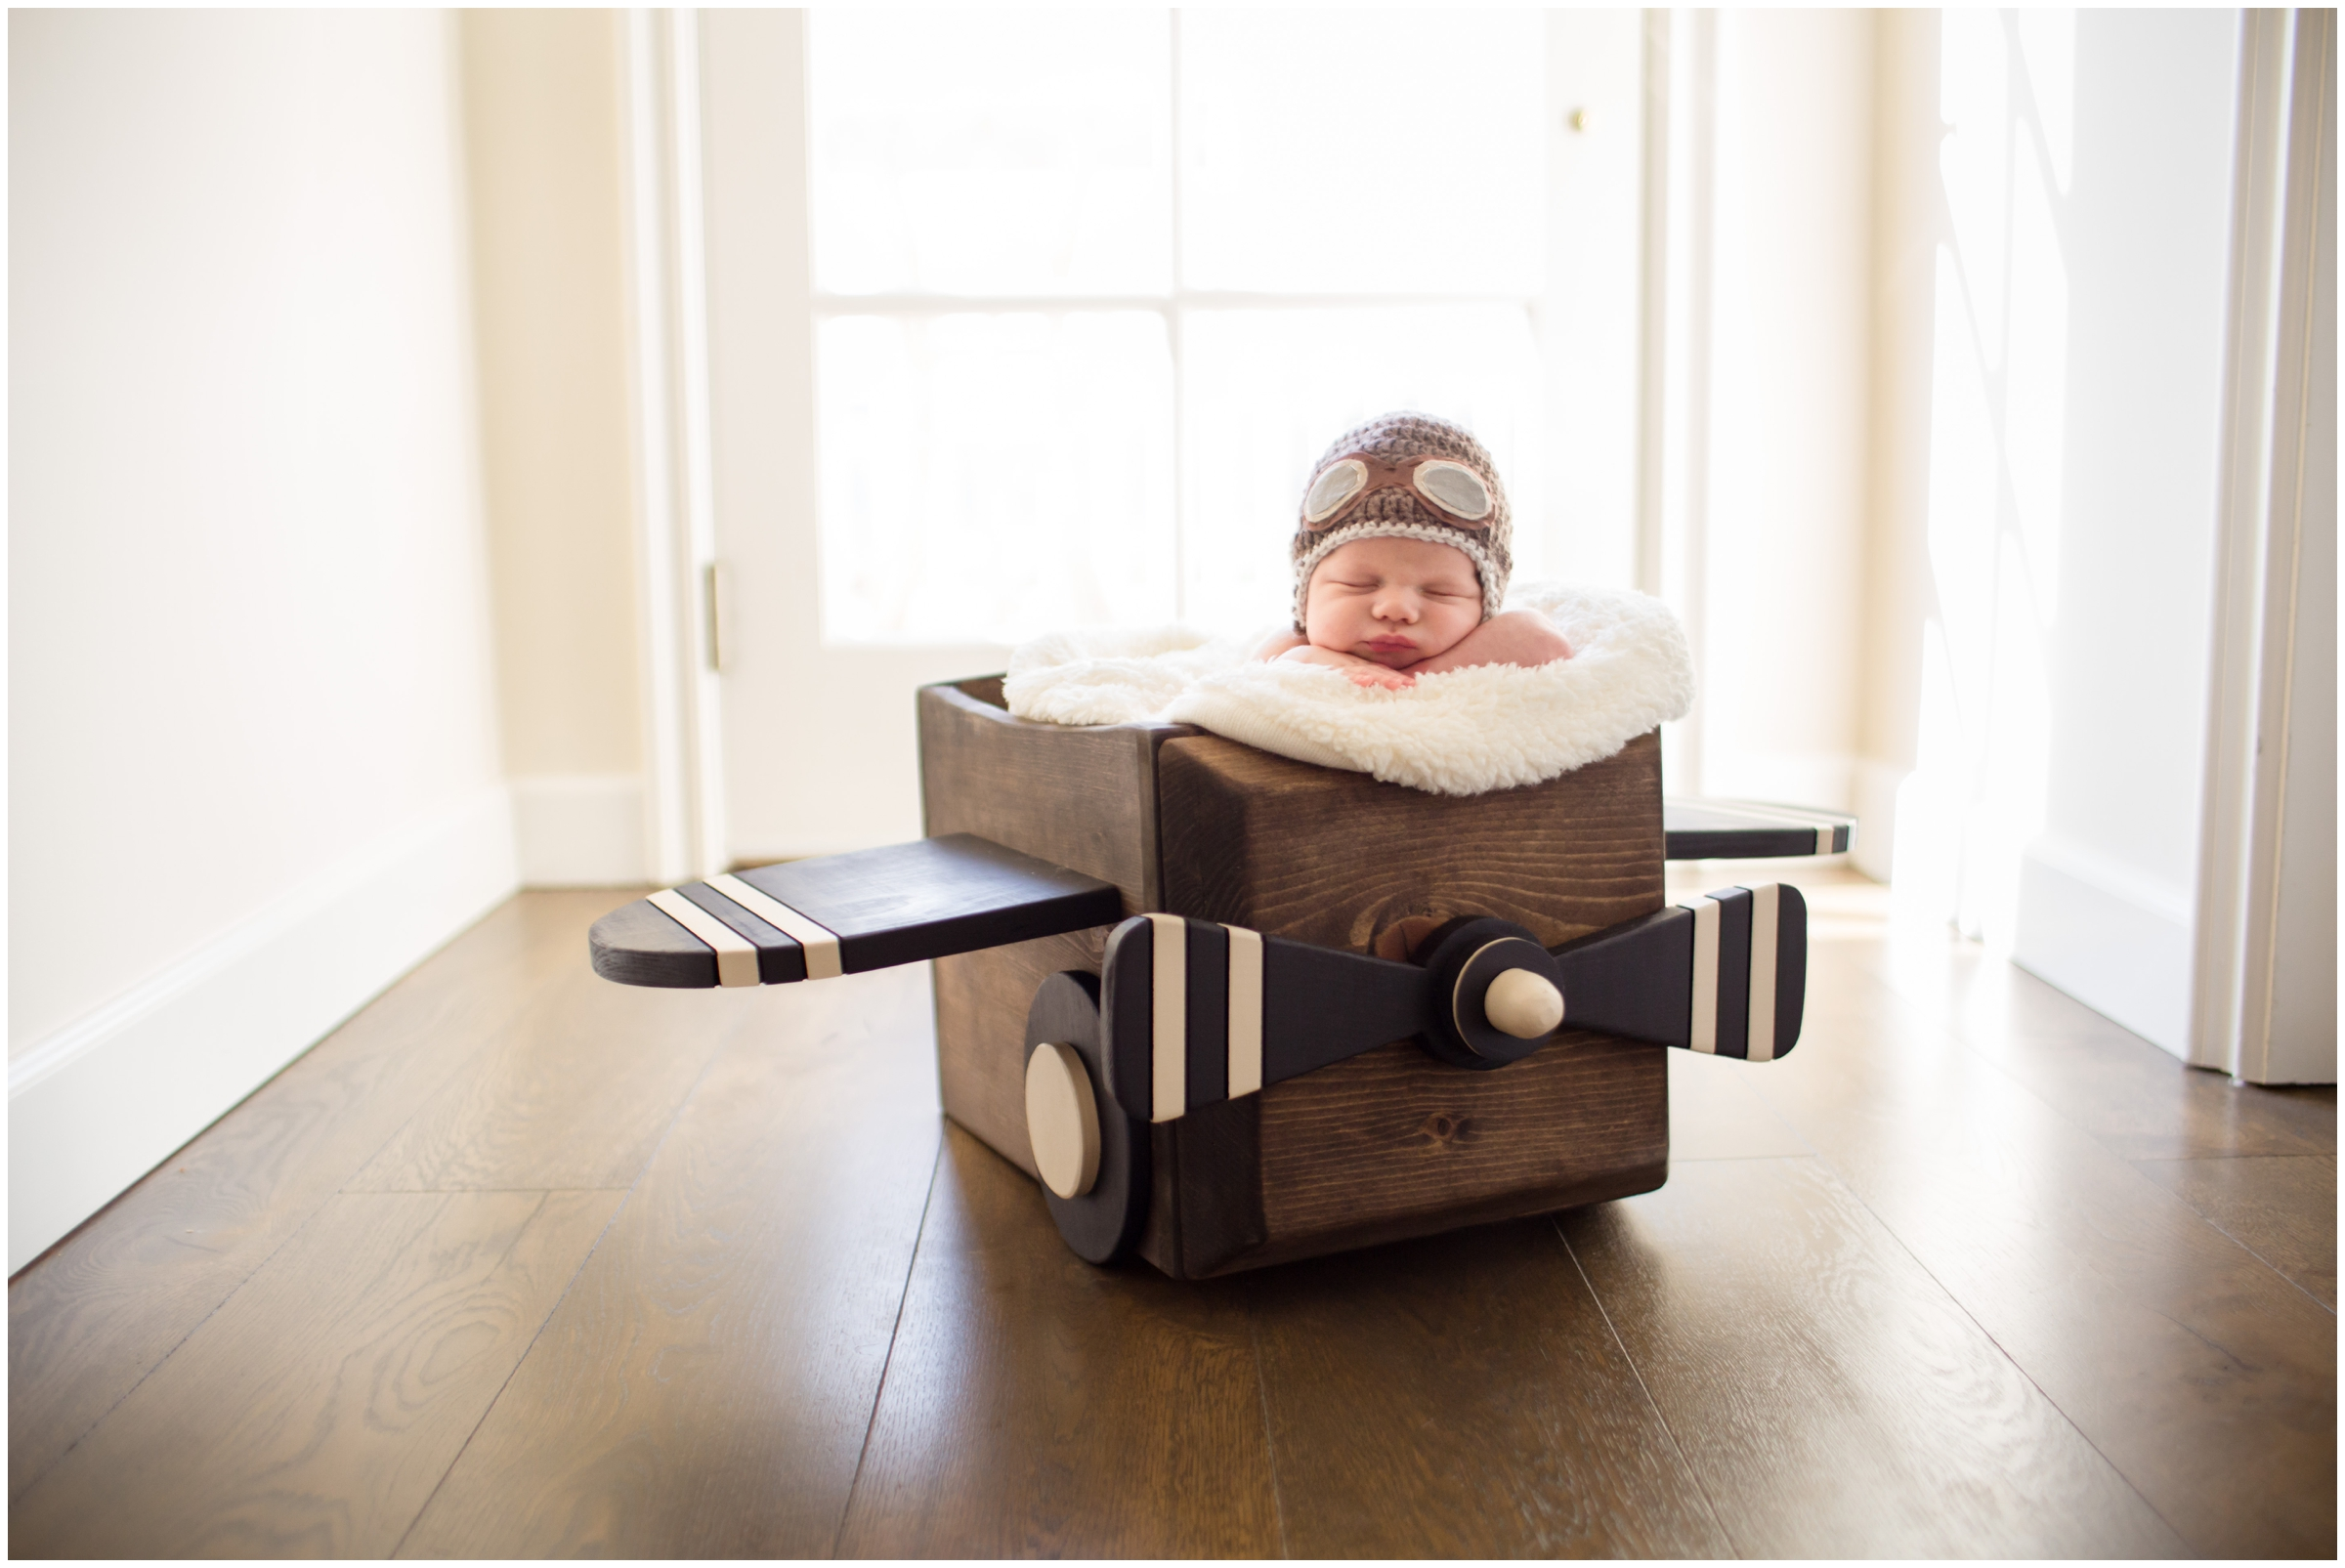 Newborn in Plane Prop by Just Maggie Photography - Los Angeles Newborn Photographer